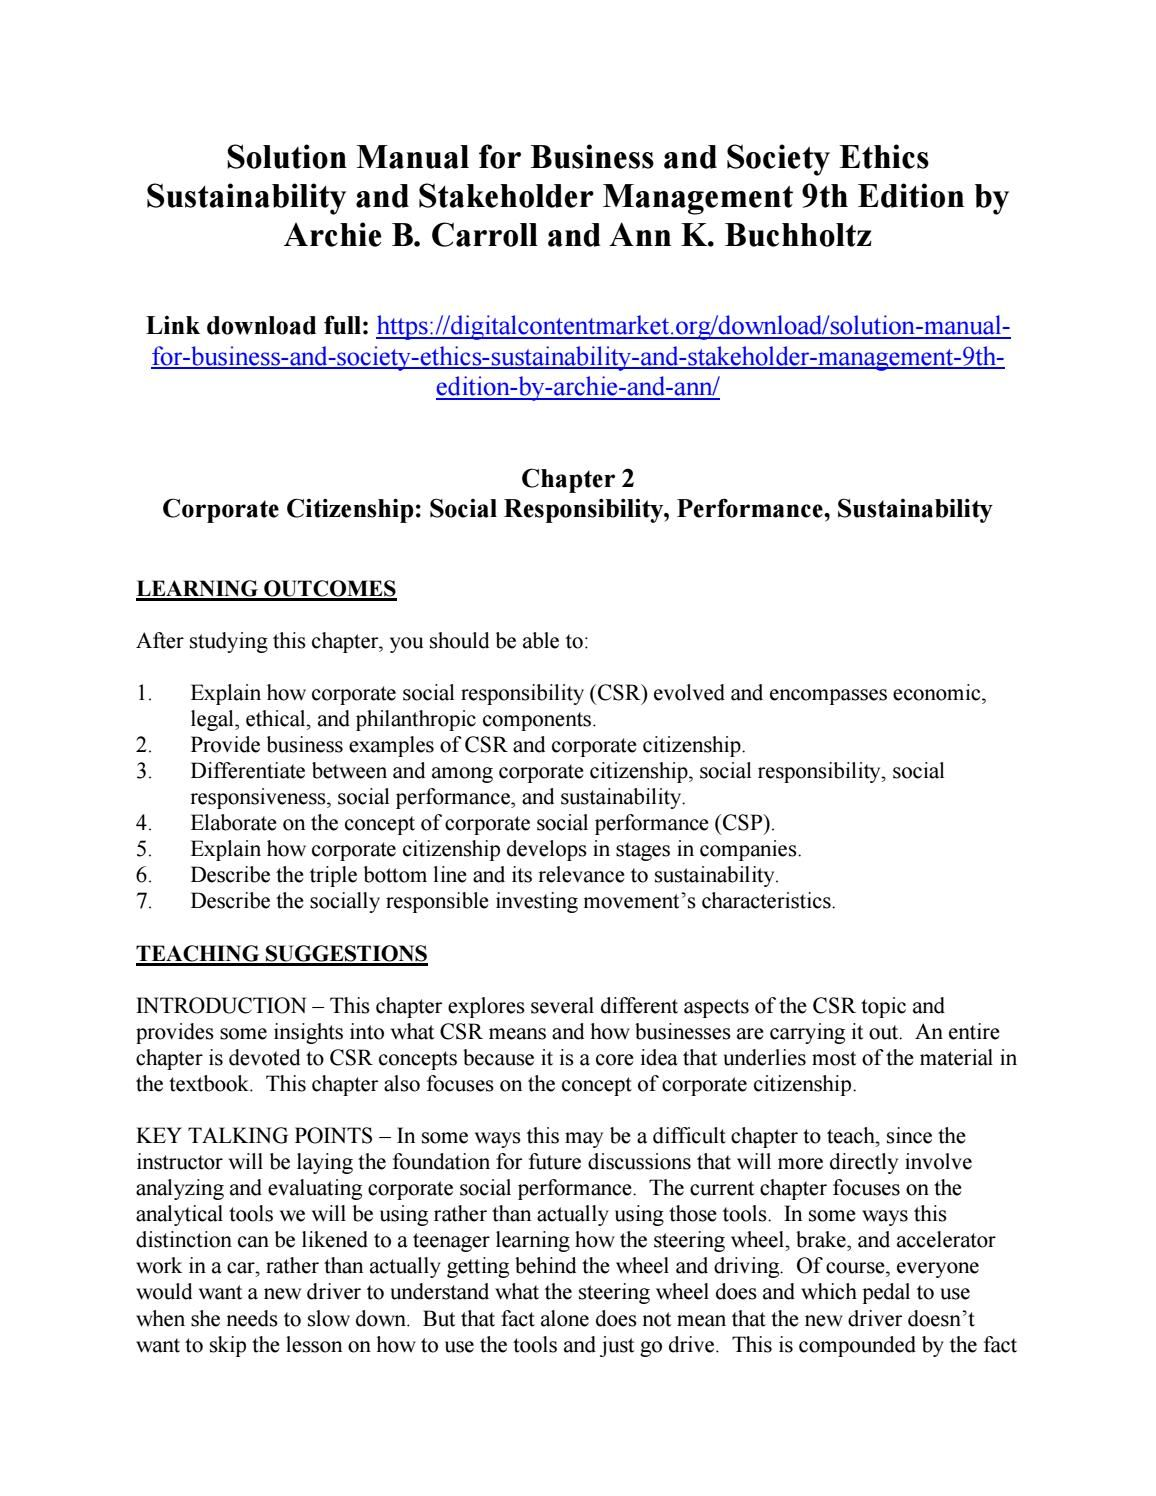 Download solution manual for business and society ethics sustainability and  stakeholder management 9